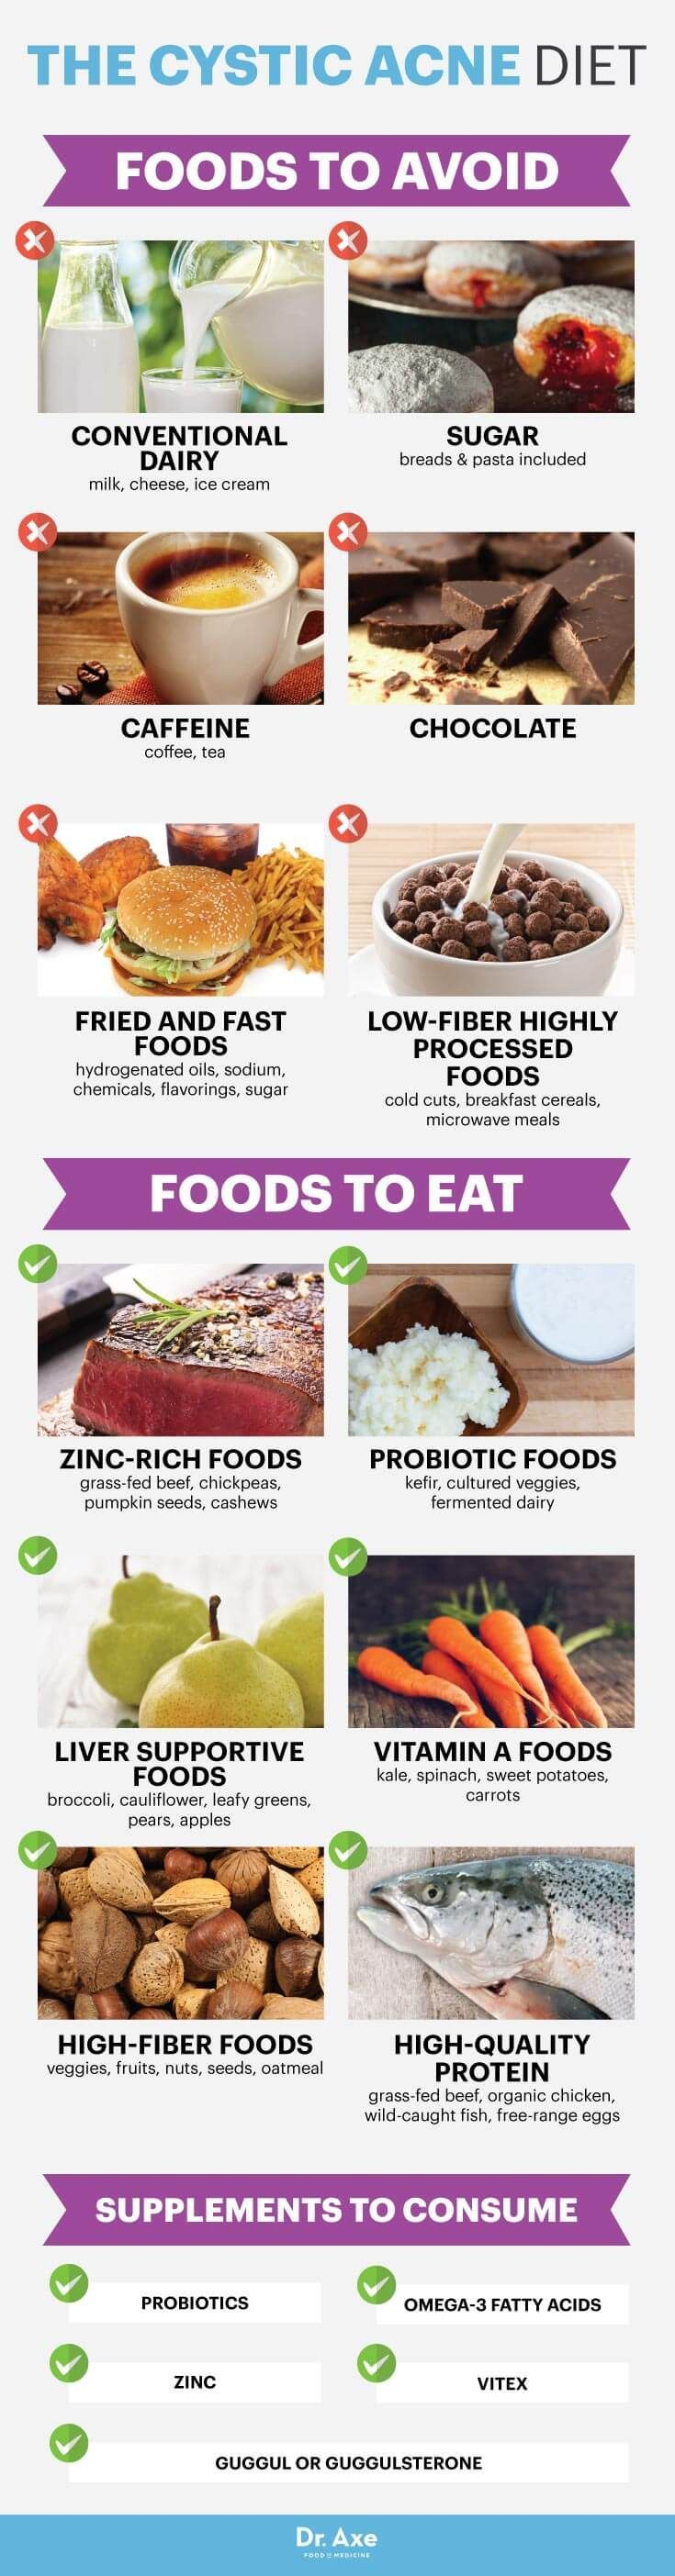 Cystic acne diet - Dr. Axe